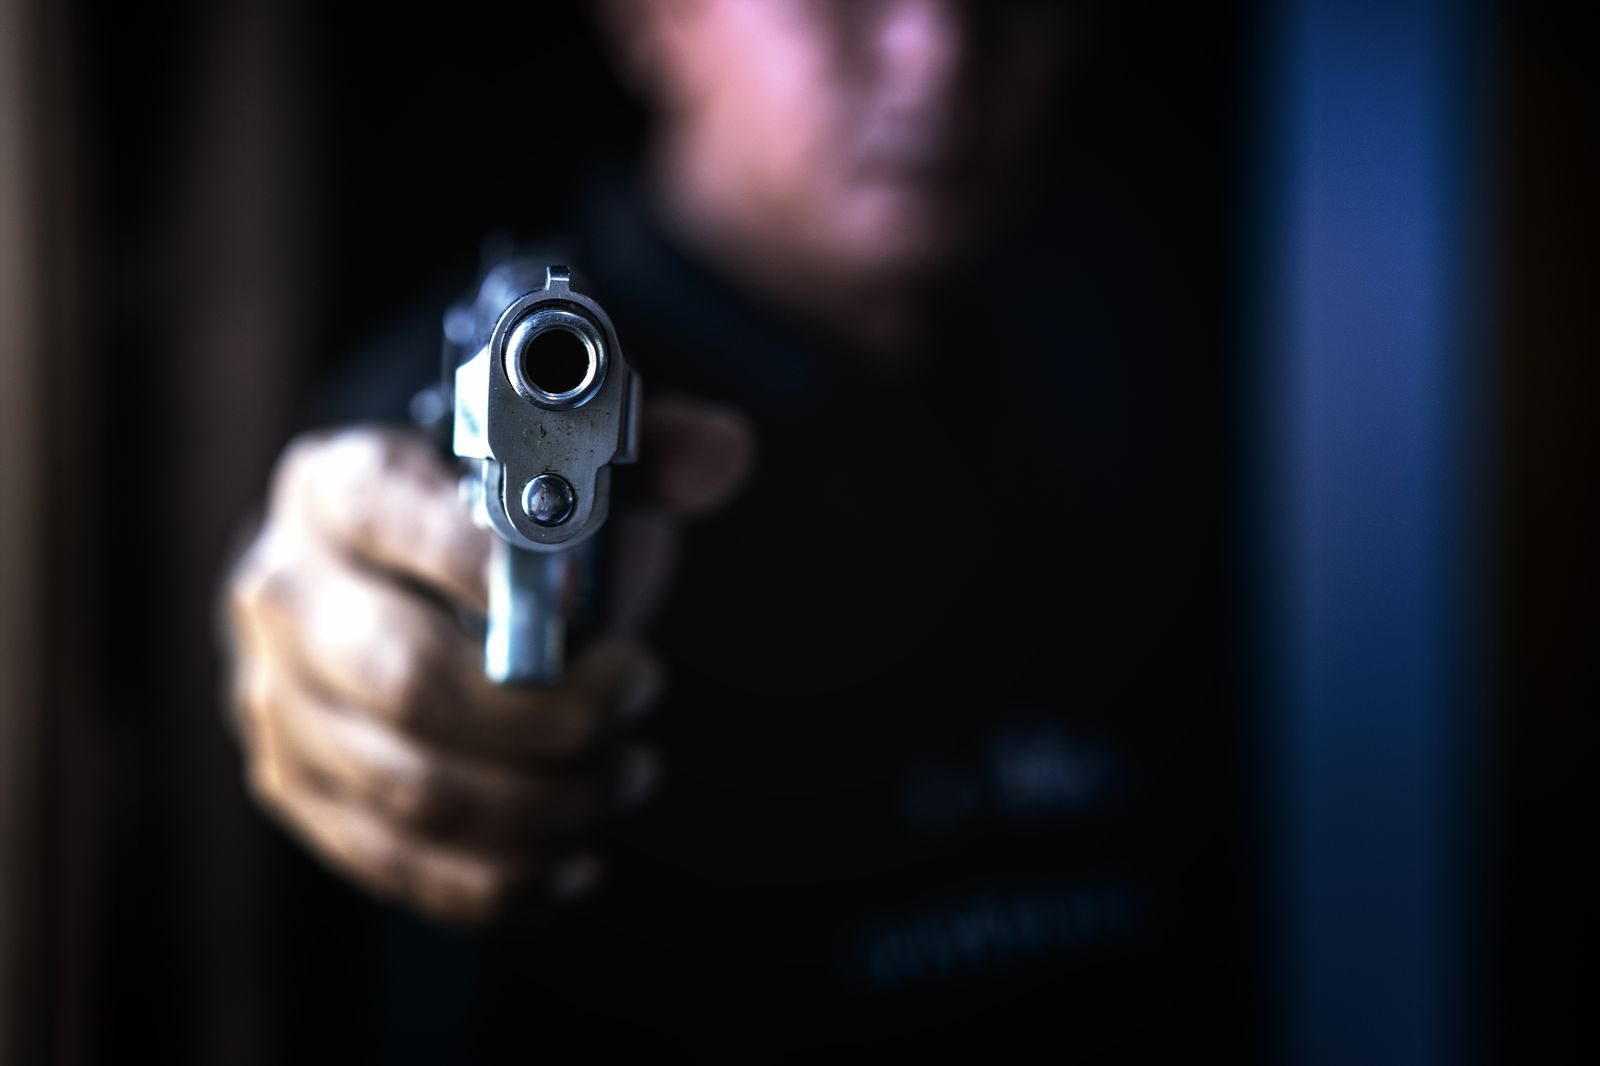 Armed robbers used the gun to robbery.